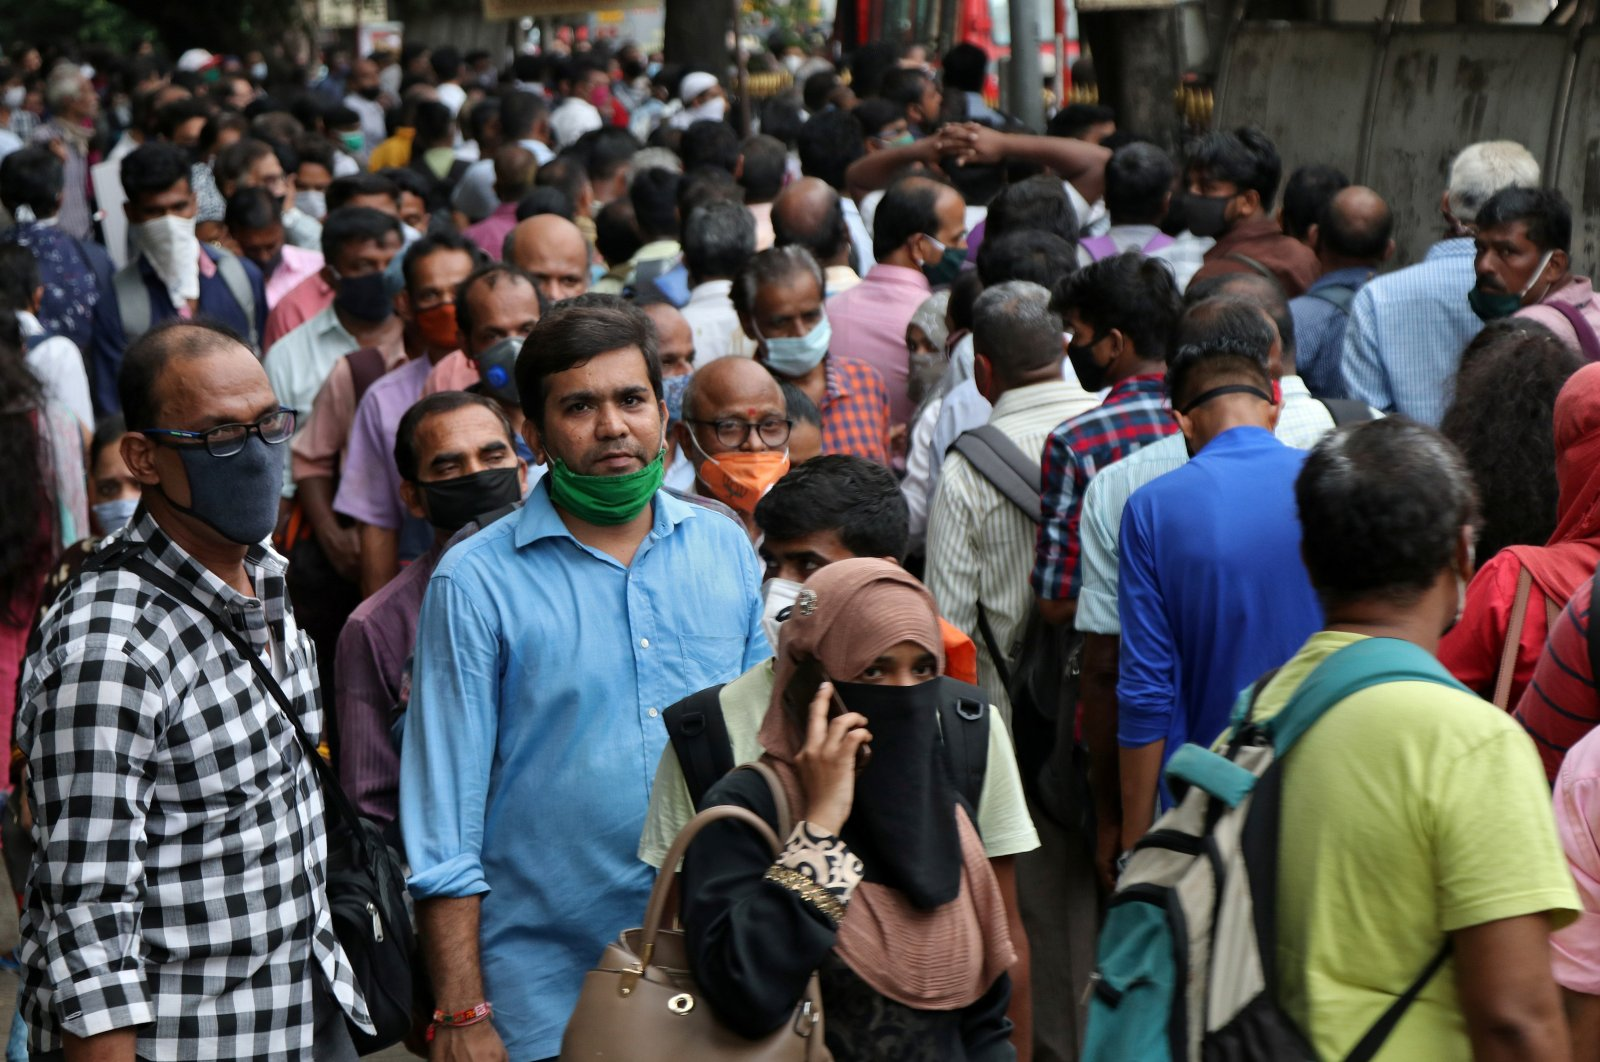 People wait to board passenger buses during rush hour at a bus terminal, amidst the coronavirus disease (COVID-19) outbreak, in Mumbai, India, Sept. 9, 2020. (Reuters Photo)